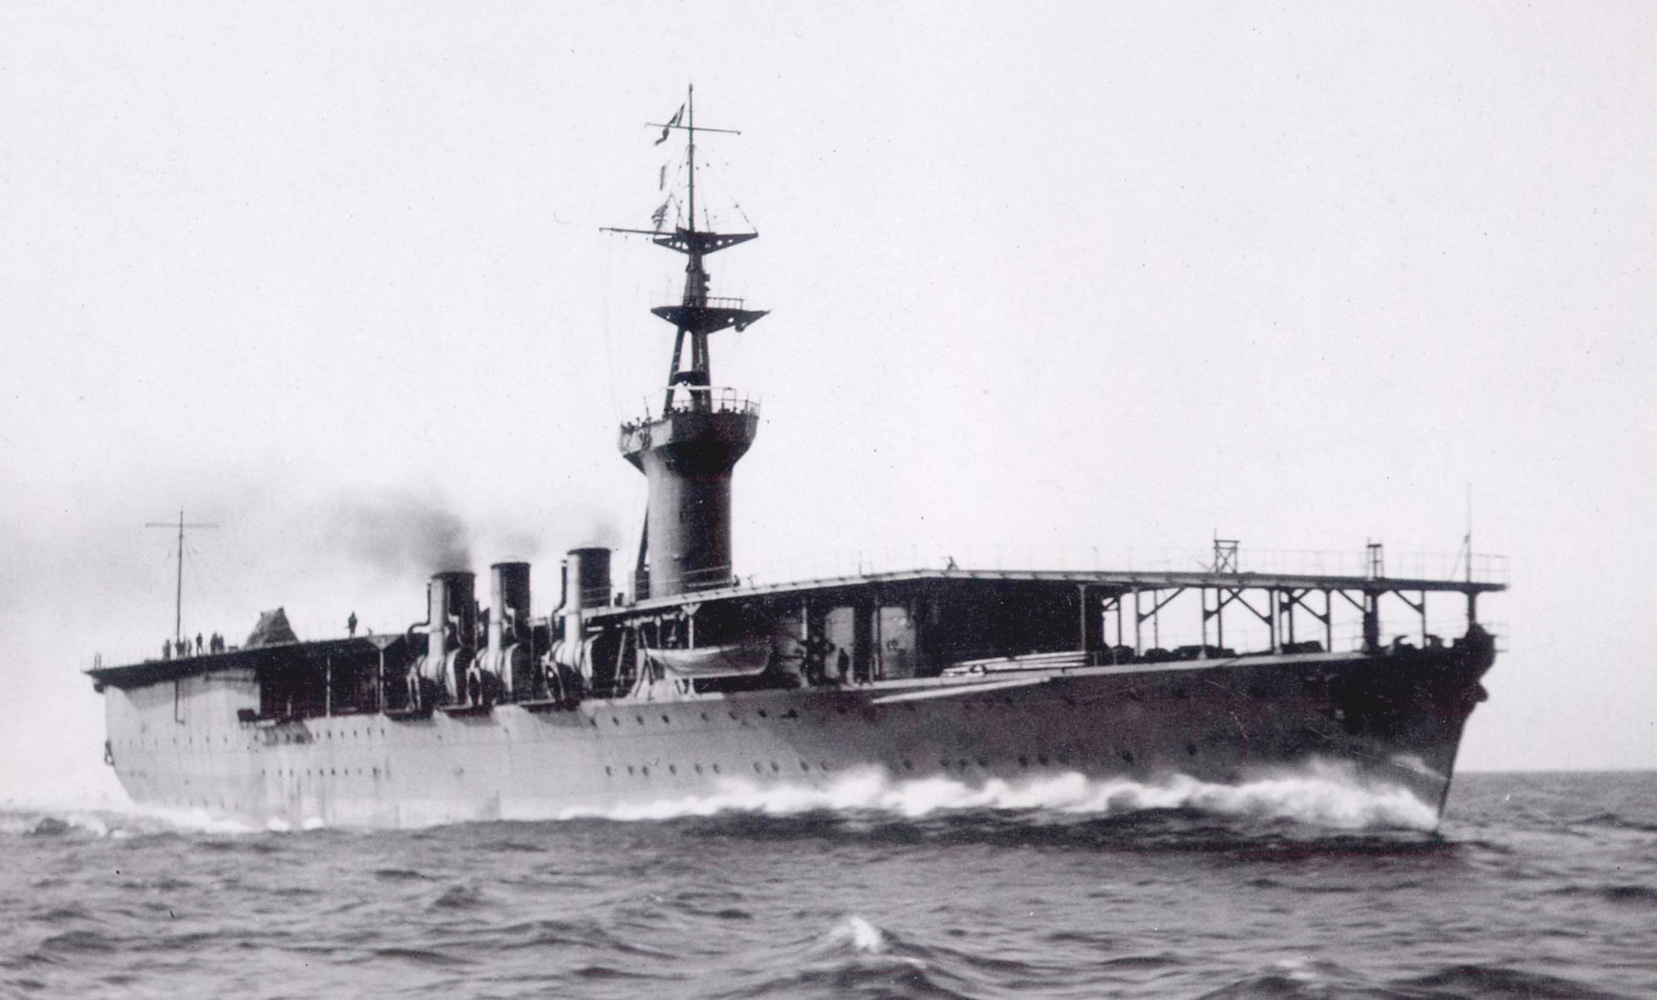 Japanese_aircraft_carrier_Hosho_1922_PUBLIC20DOMAIN_cmyk-fe39185